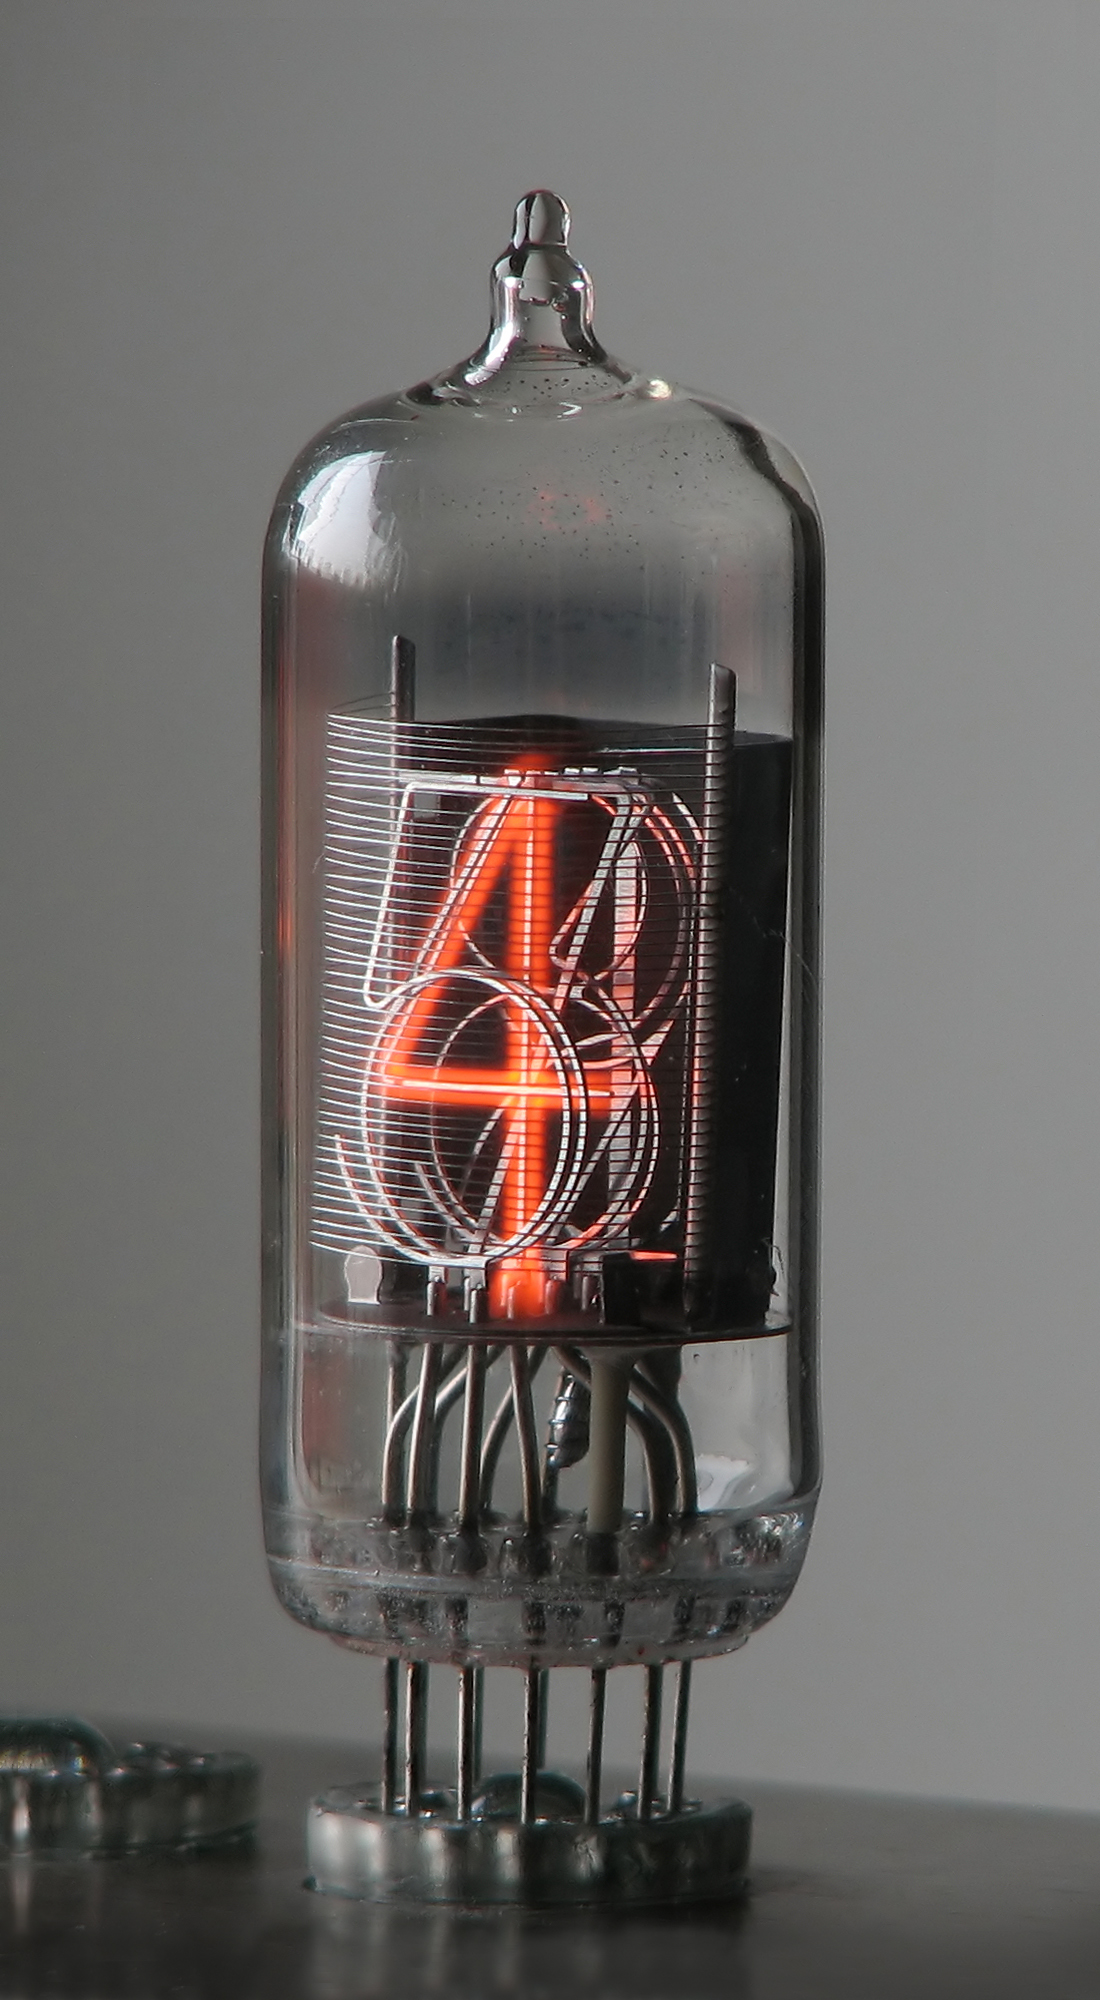 The way the digits are stacked in a nixie tube is visible in this picture.